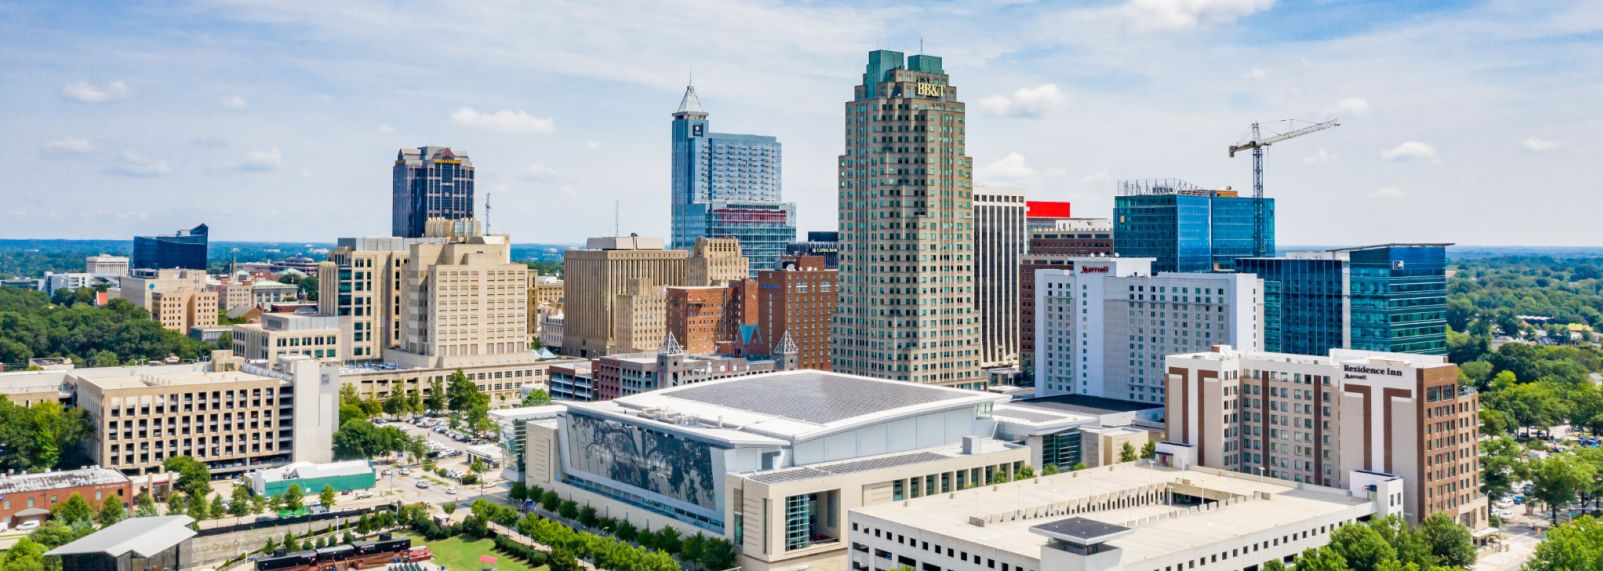 Raleigh, N.C., downtown skyline